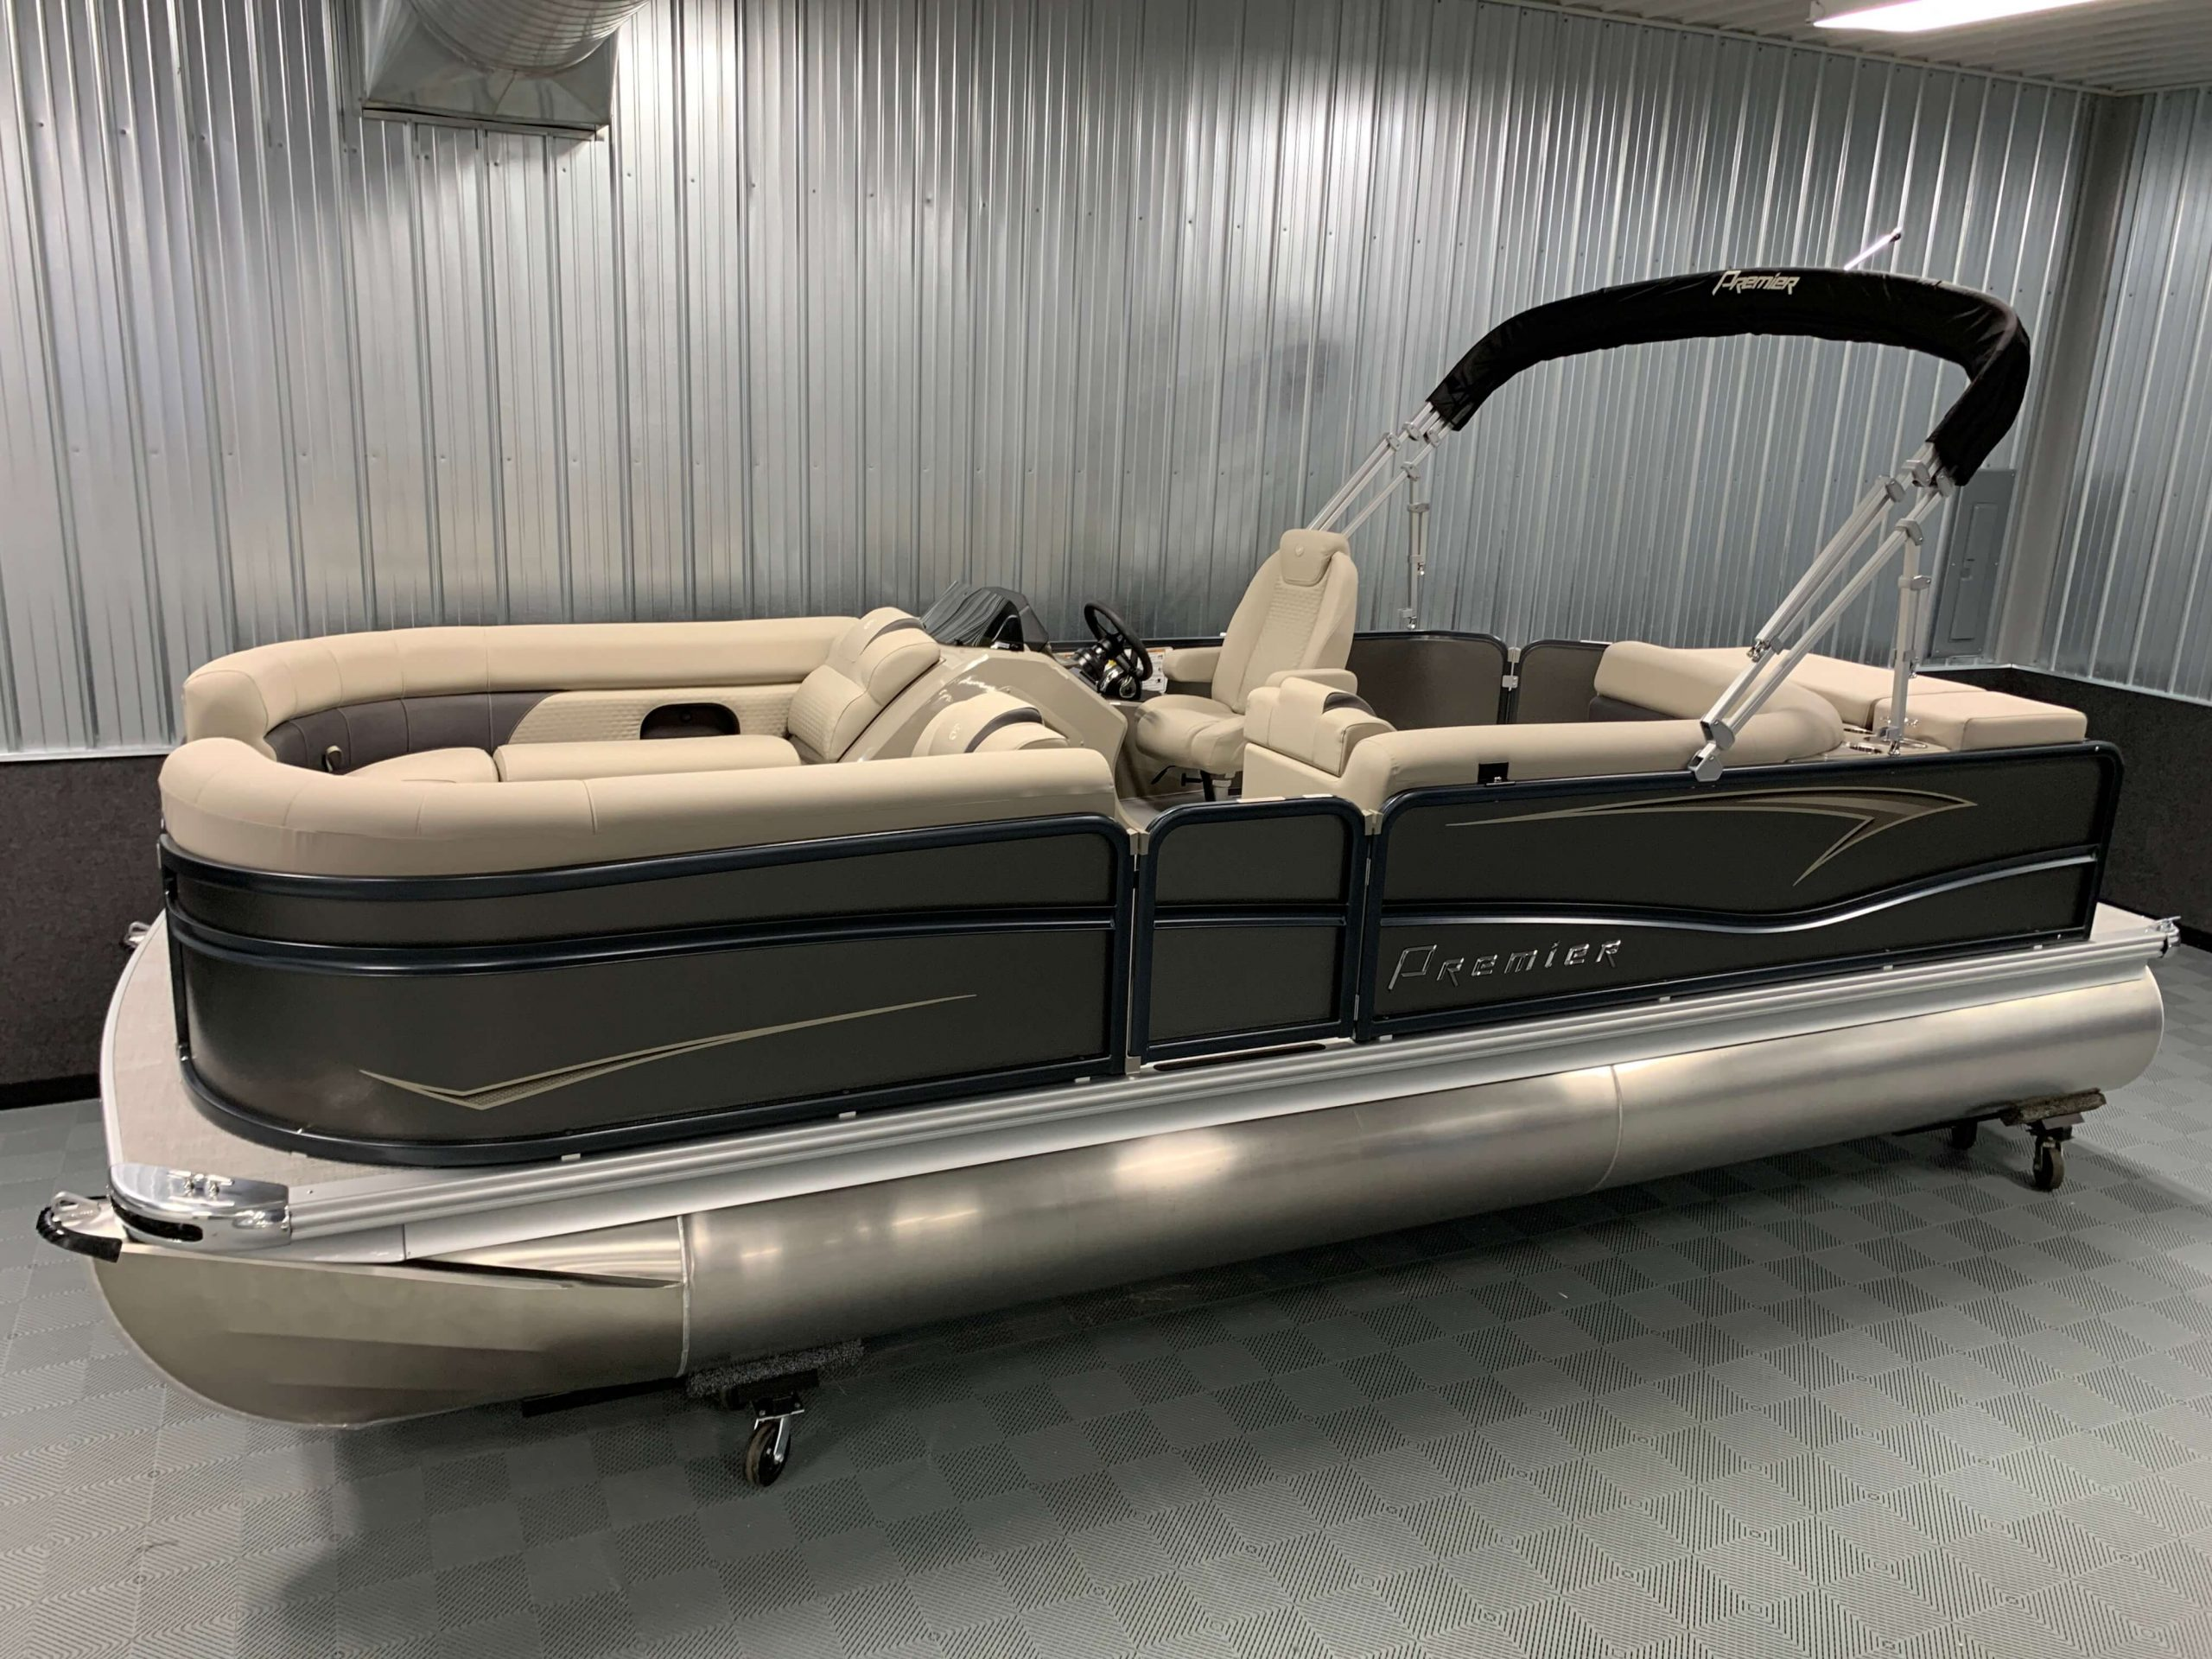 DELUXE PONTOON BOAT COVER Premier Boats 200 SunSation RE